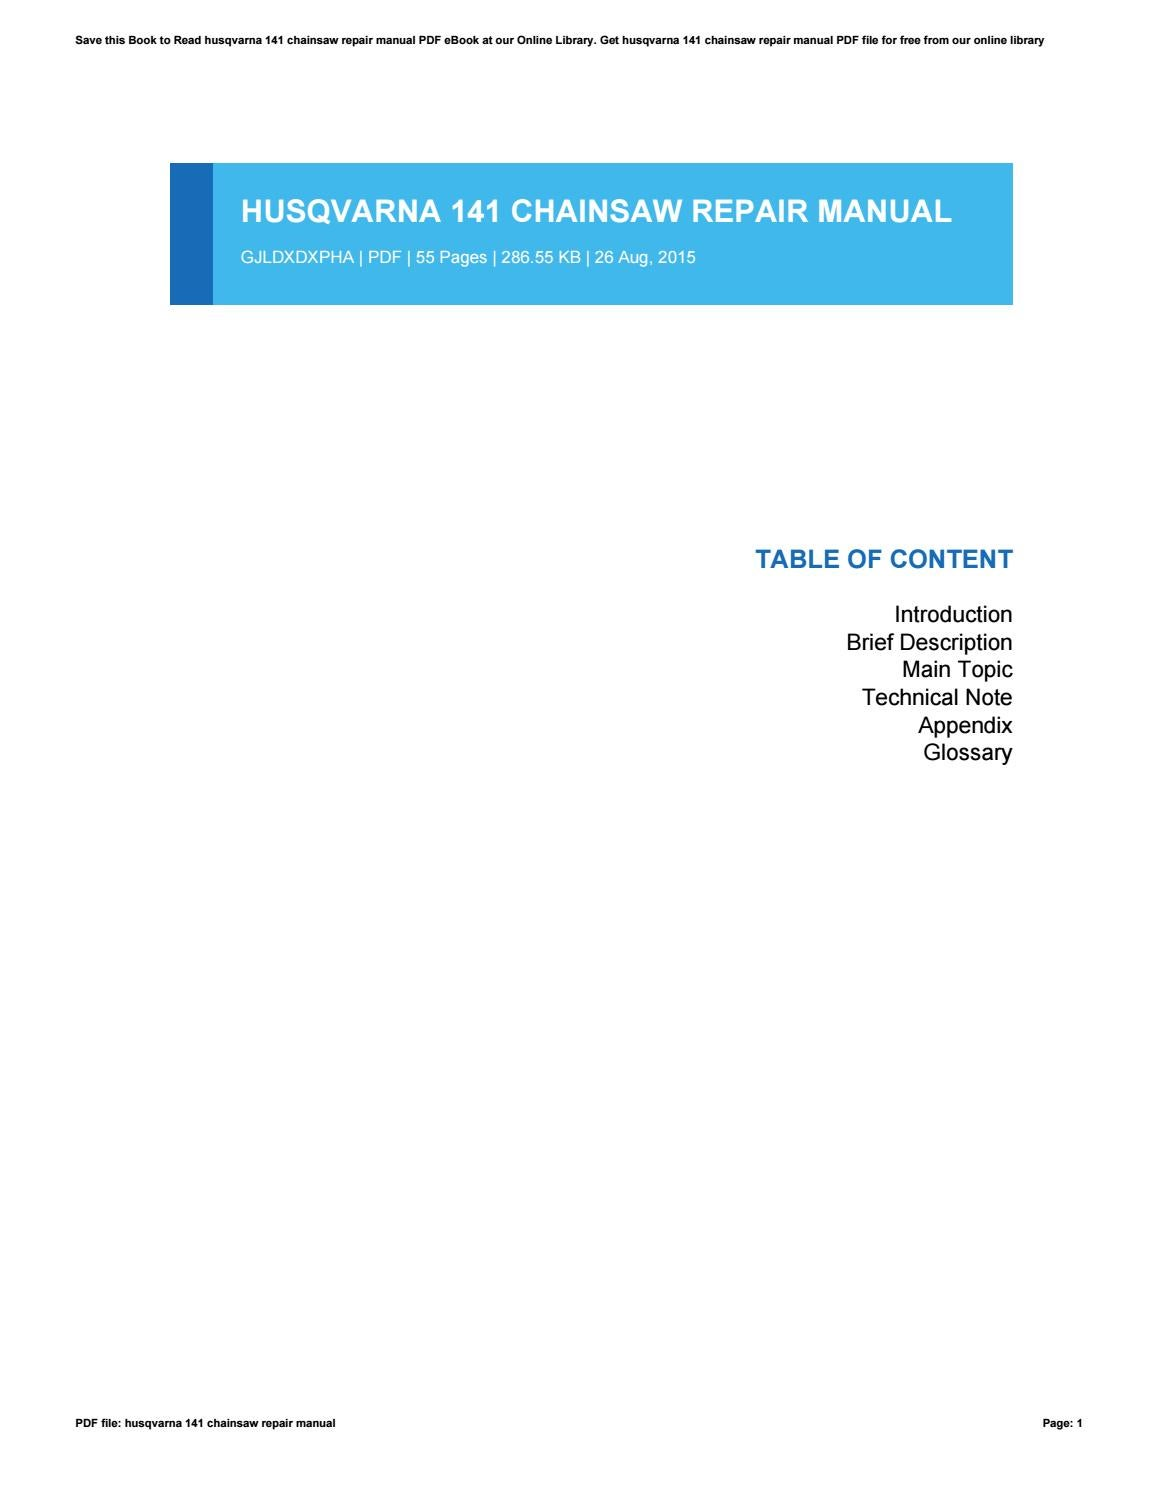 Husqvarna chainsaw 141 manual.